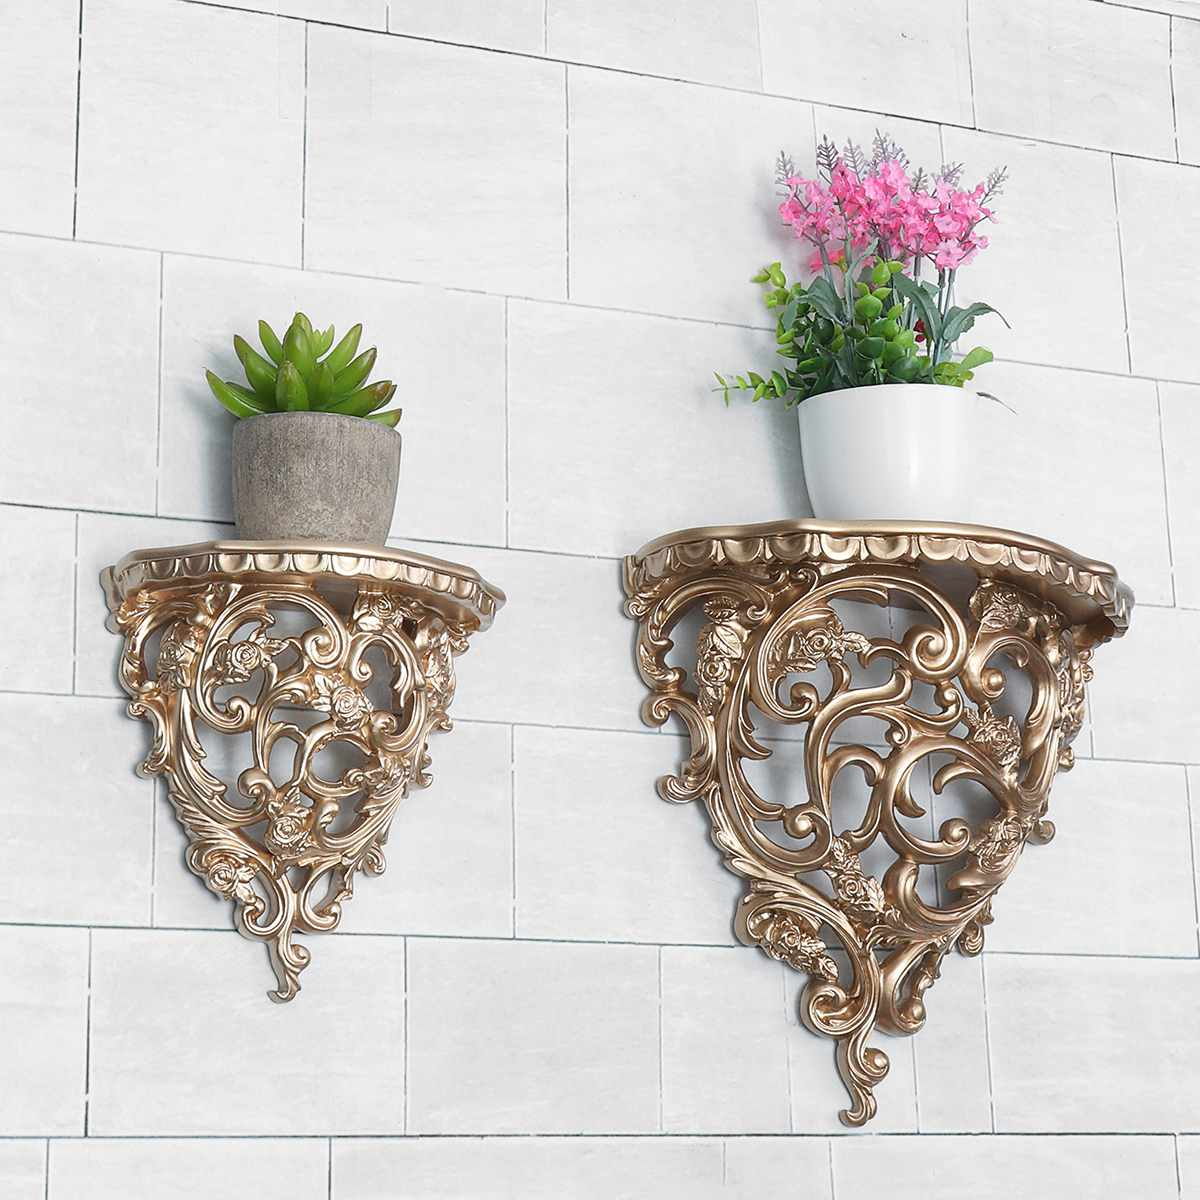 Baroque Style Decorative Shelves For Living Room  Ornament Flowers Wall Hanging Storage Rack European Style Decor Home Cafe